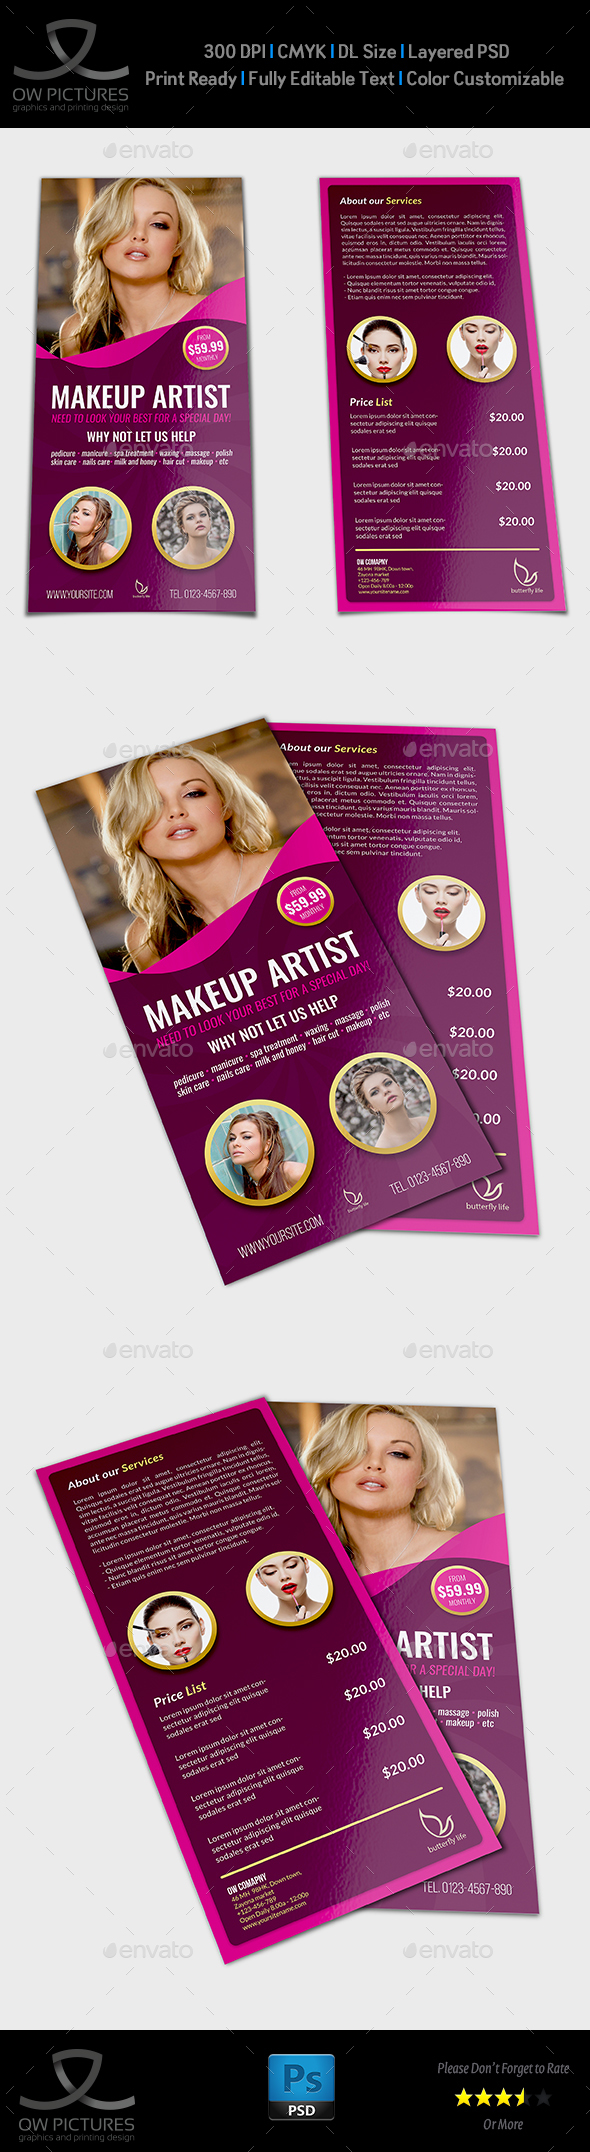 Beauty Center Flyer DL Size Template Vol.2 - Flyers Print Templates